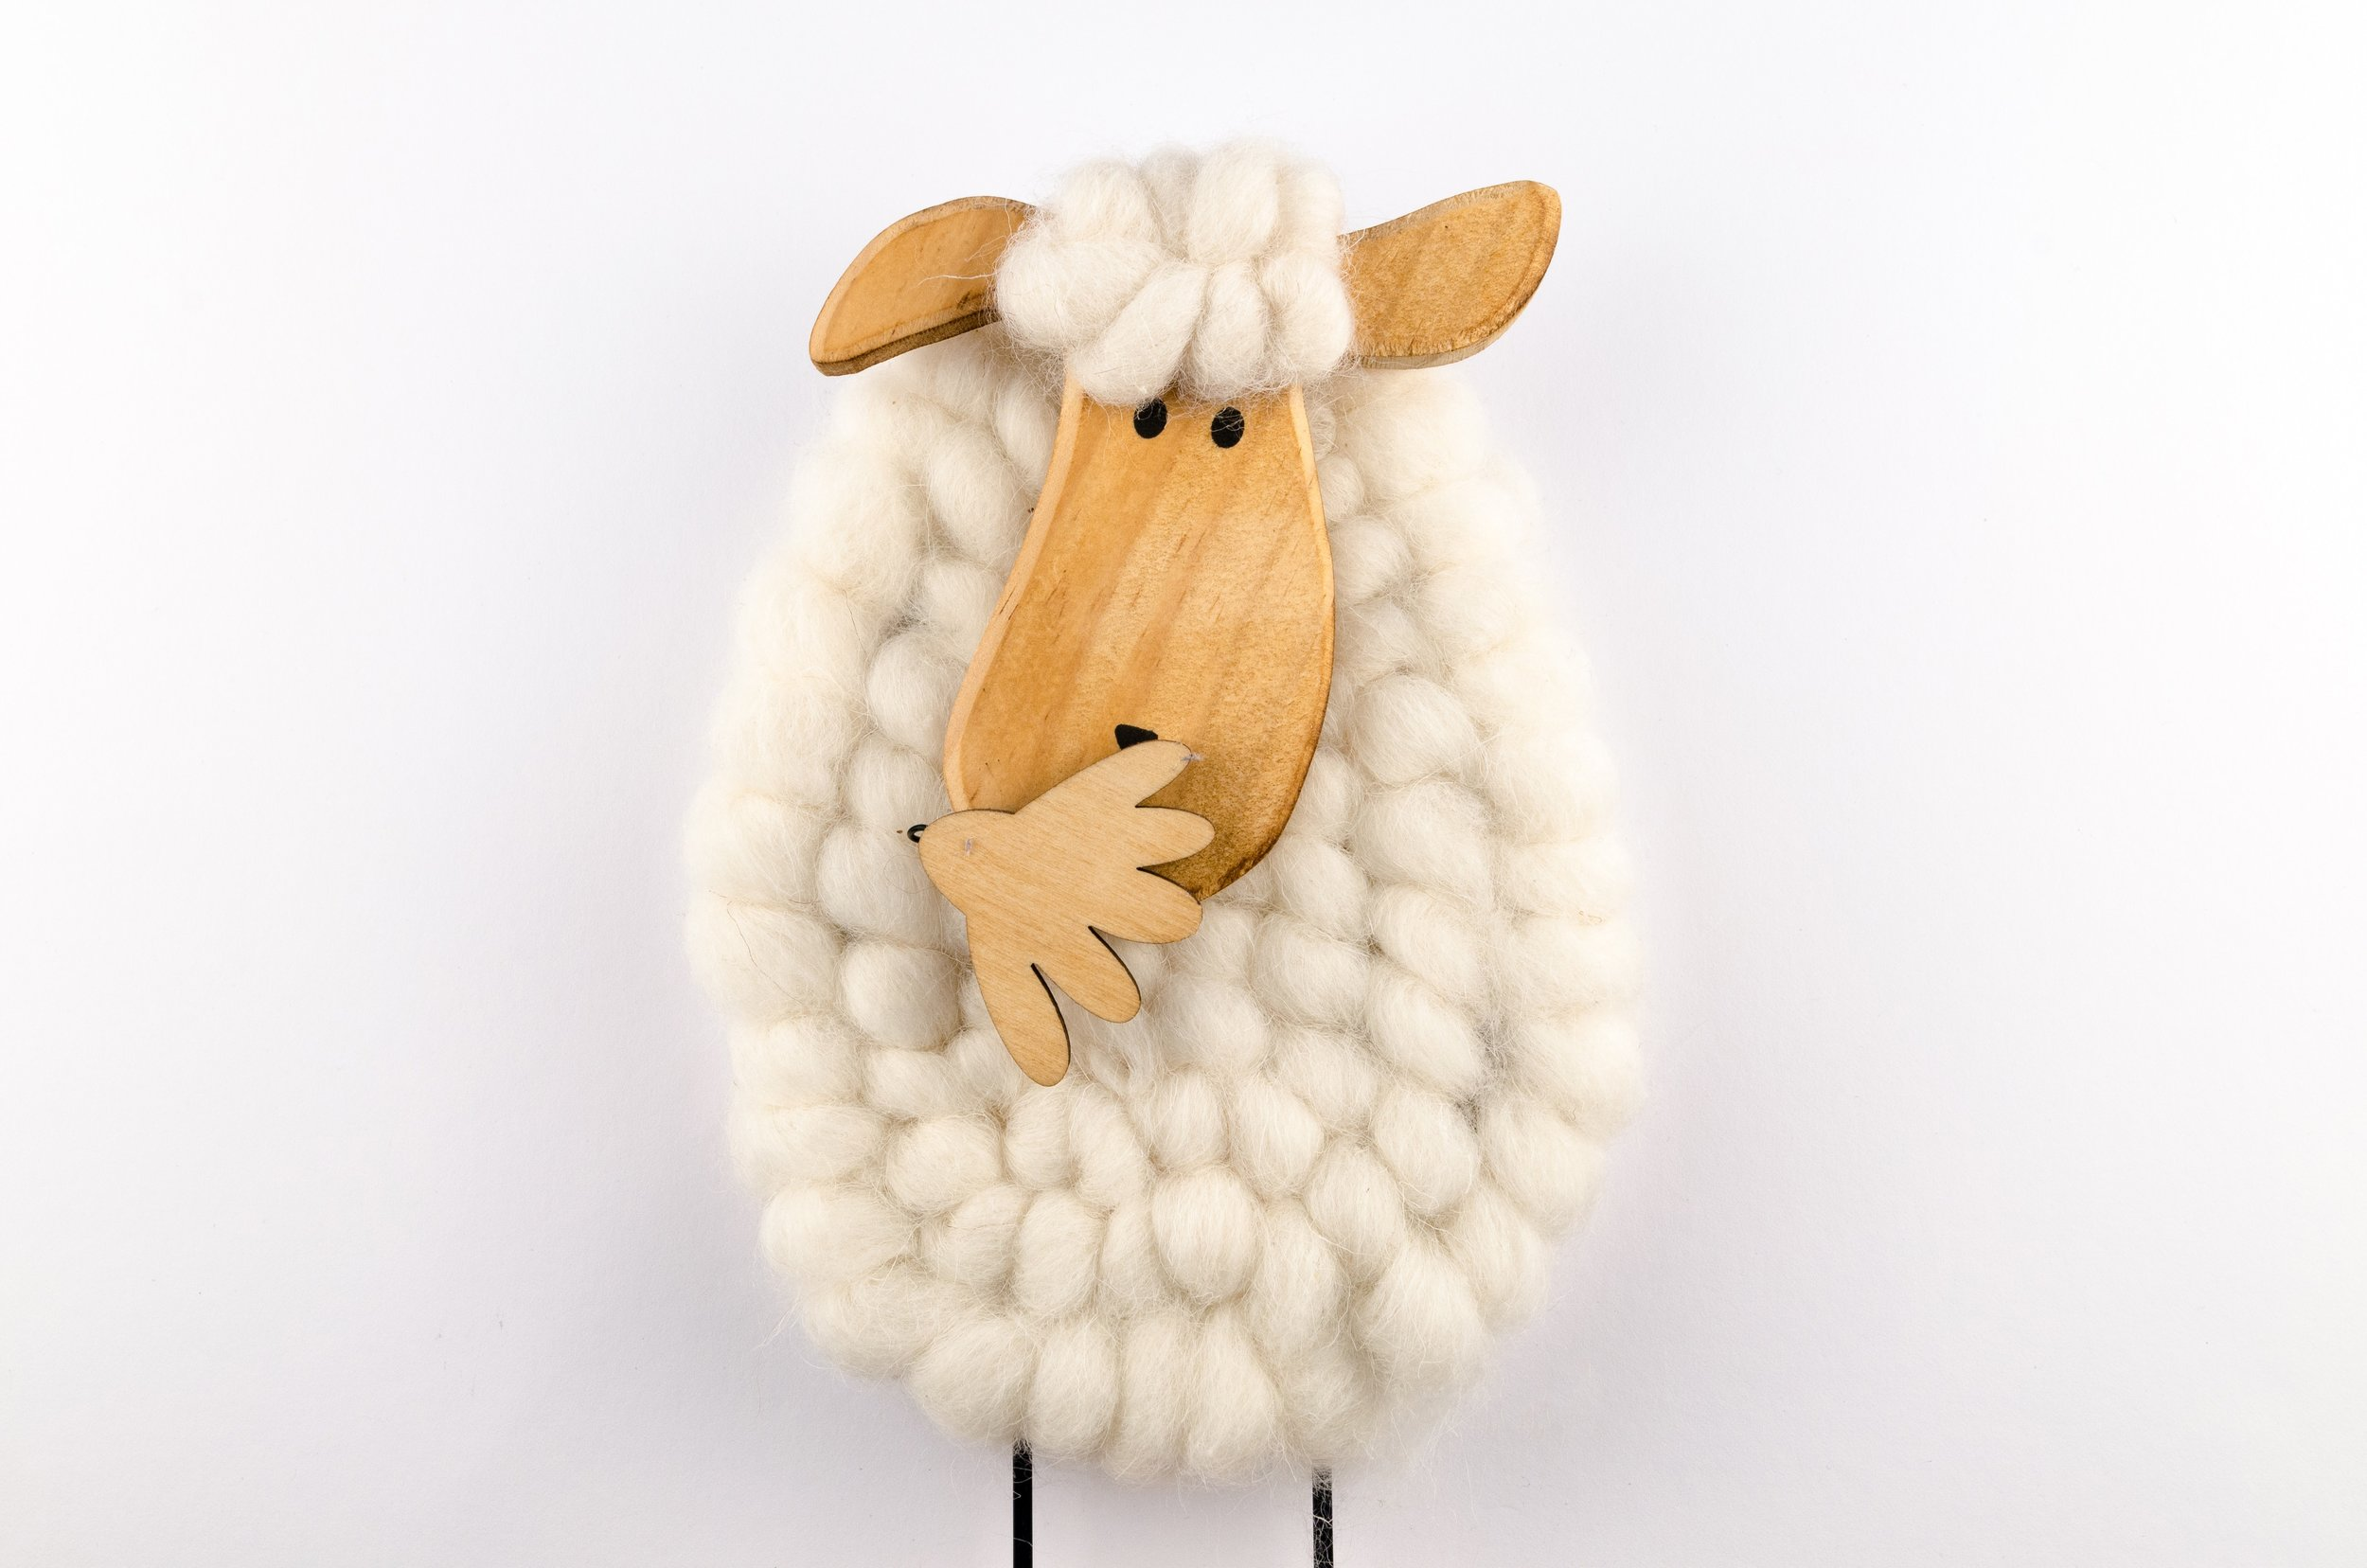 cute-object-sheep-1420706.jpg